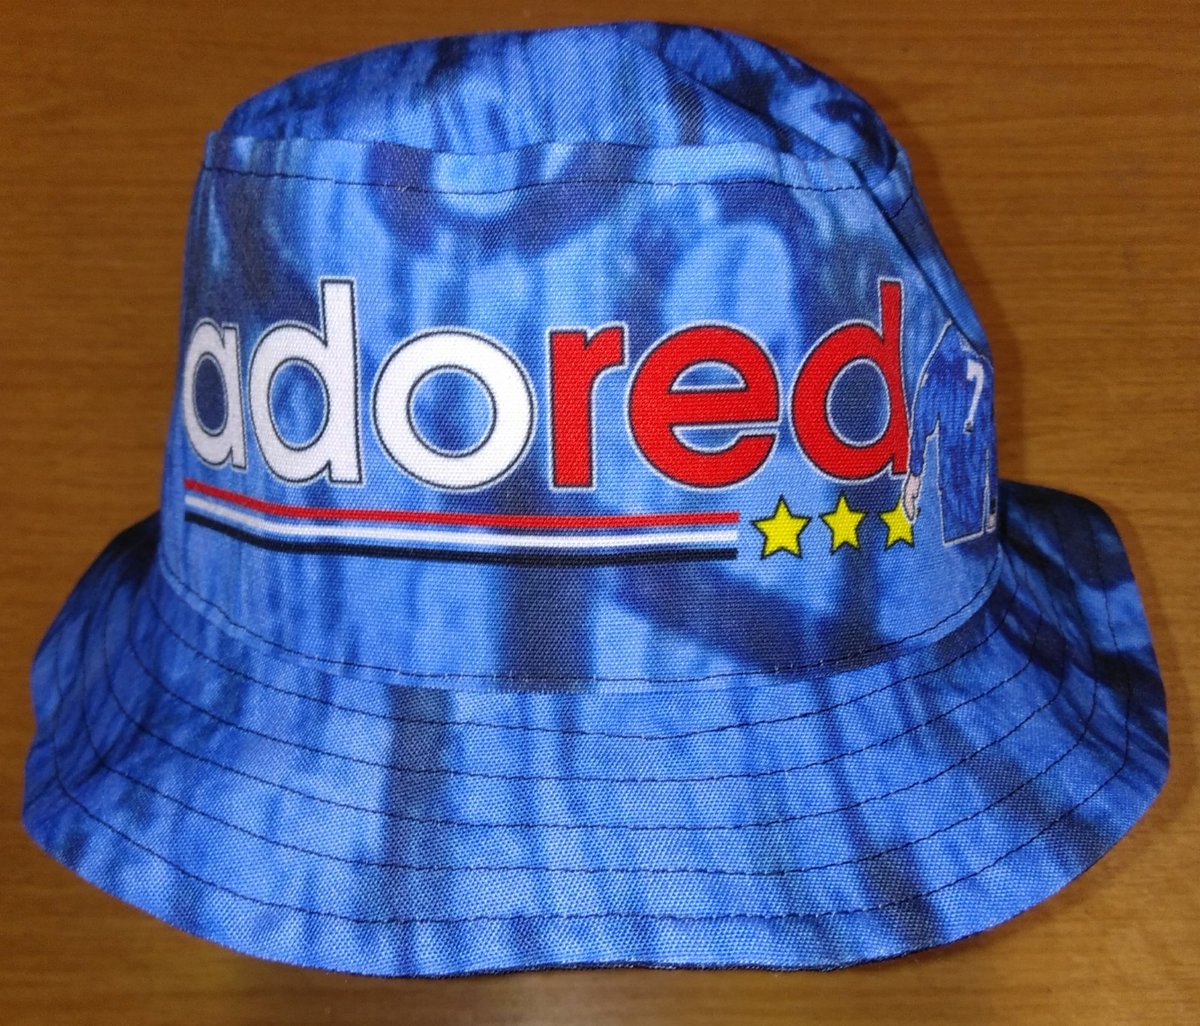 8a8f4690a8d  PRE ORDER  AVAILABLE  NOW  EXCLUSIVE LIMITED EDITION Reversible  adoRED  Eric 92-94  Away Bucket Hats. http   www.nicwillustrations.co.uk Limited to  60pcs ...